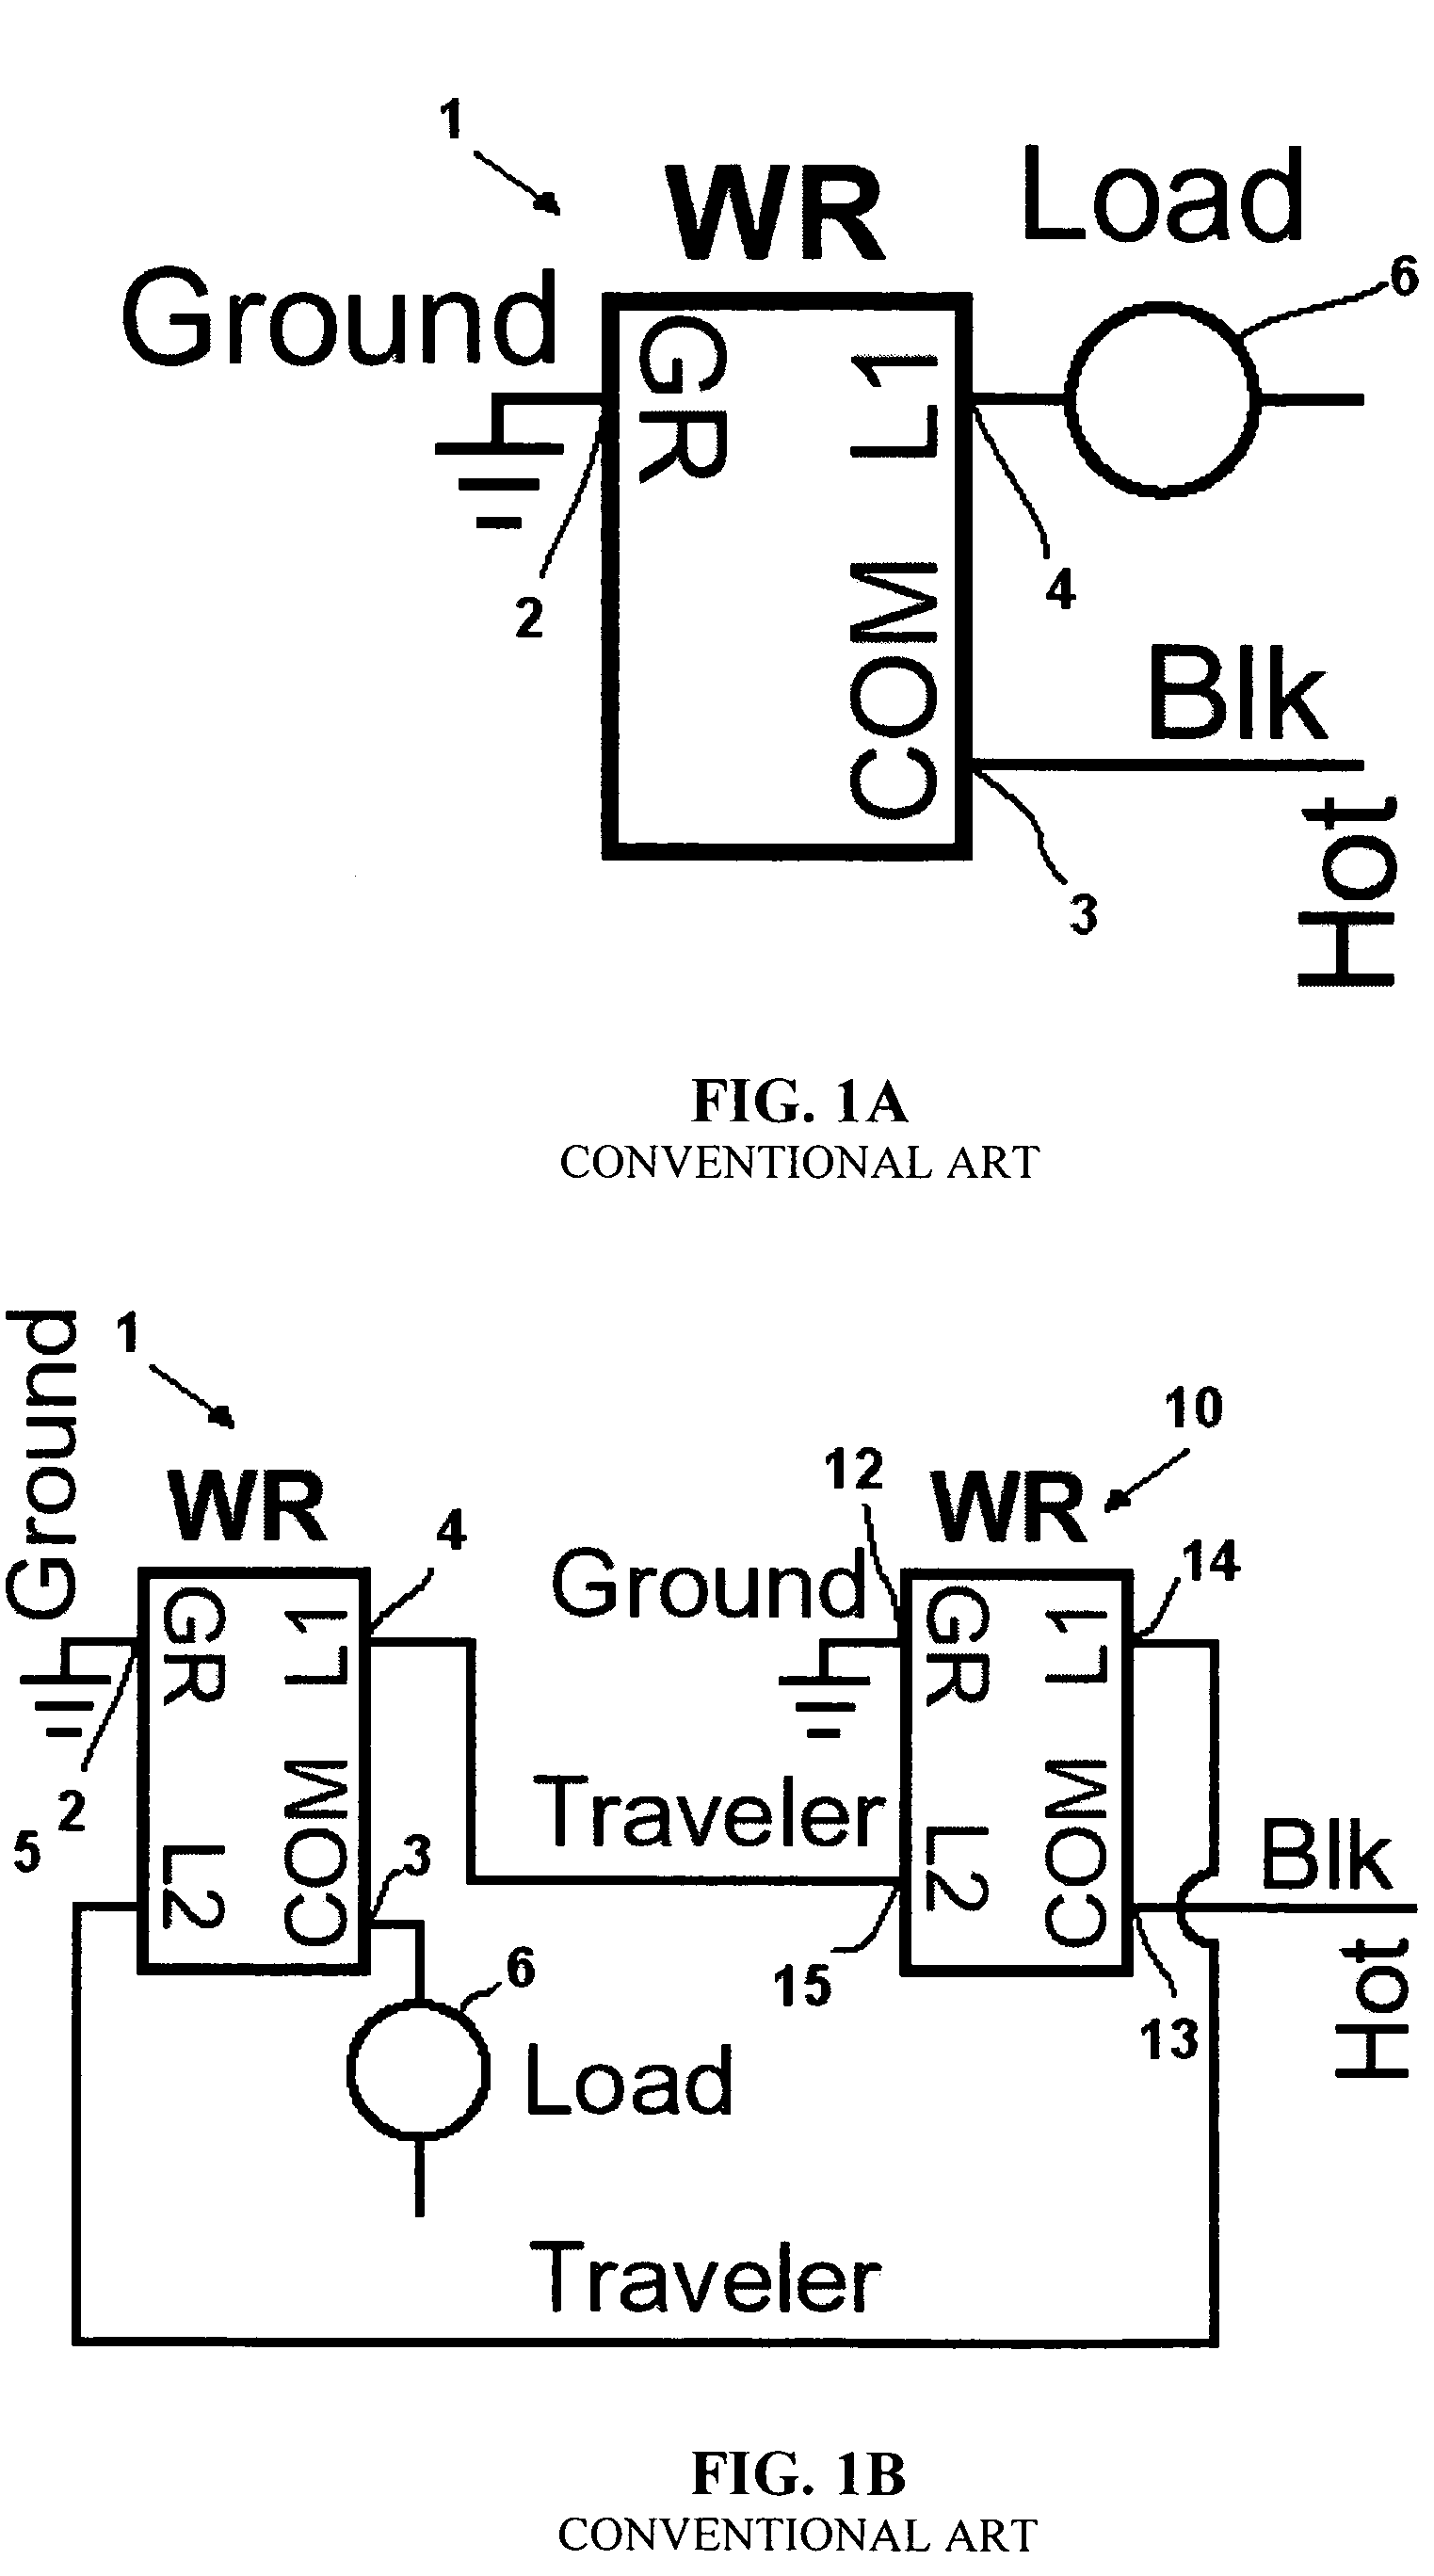 Hubbel 2 Way Single Switch Wiring Diagram 41 Images Of A Light Us07791282 20100907 D00001 Patent Us7791282 Motion Sensor For 3 Circuit At Cita